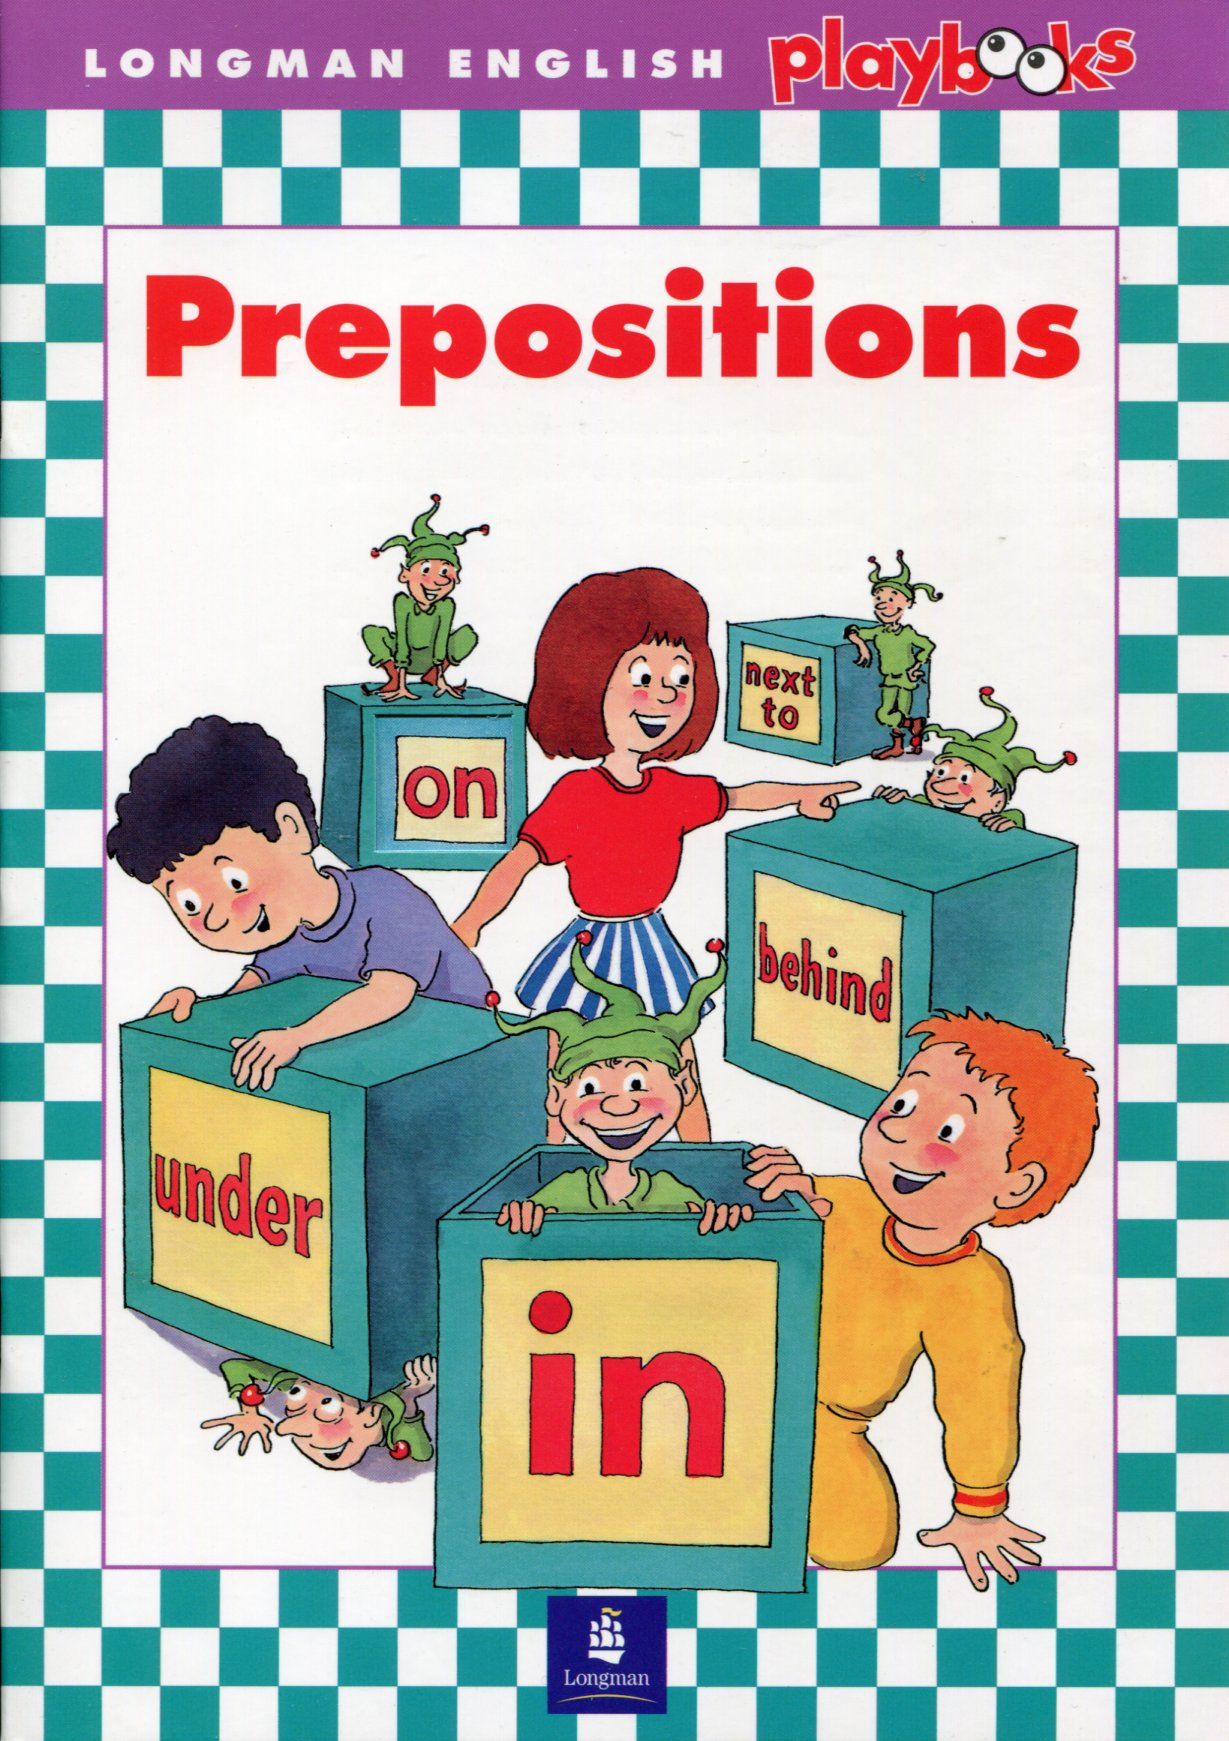 Longman English Playbooks: Prepositions